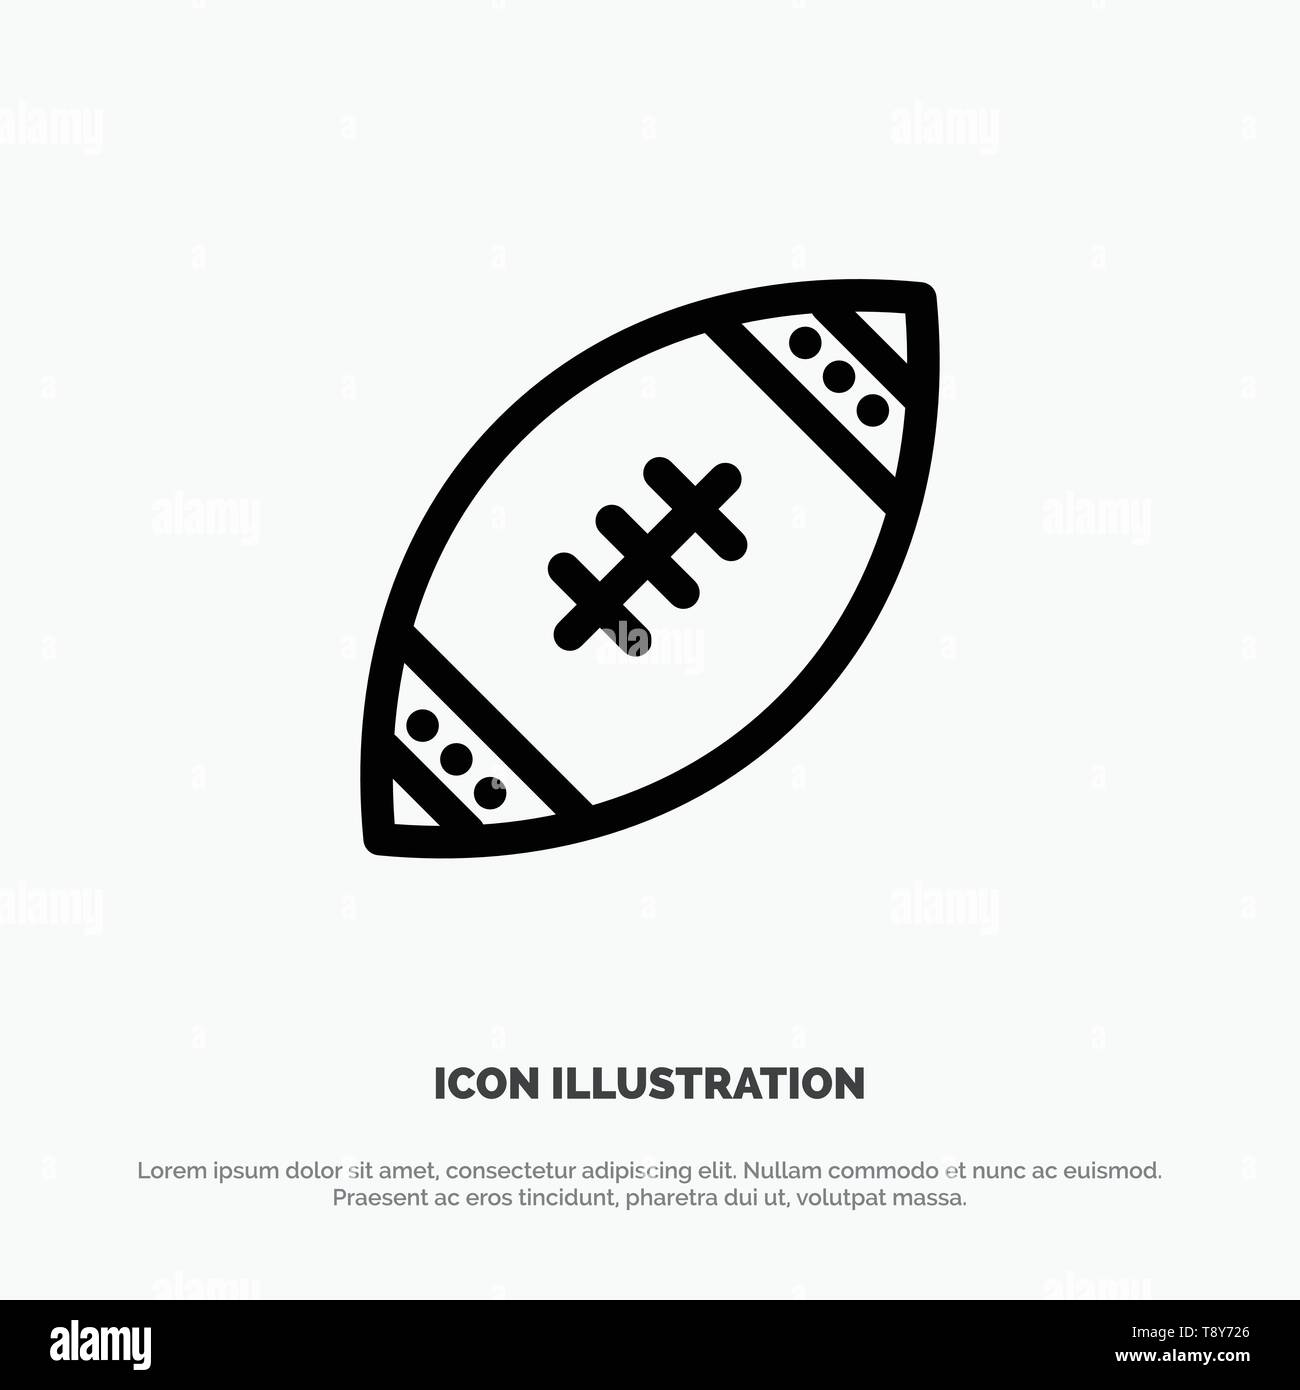 American, Ball, Football, Nfl, Rugby Line Icon Vector - Stock Image